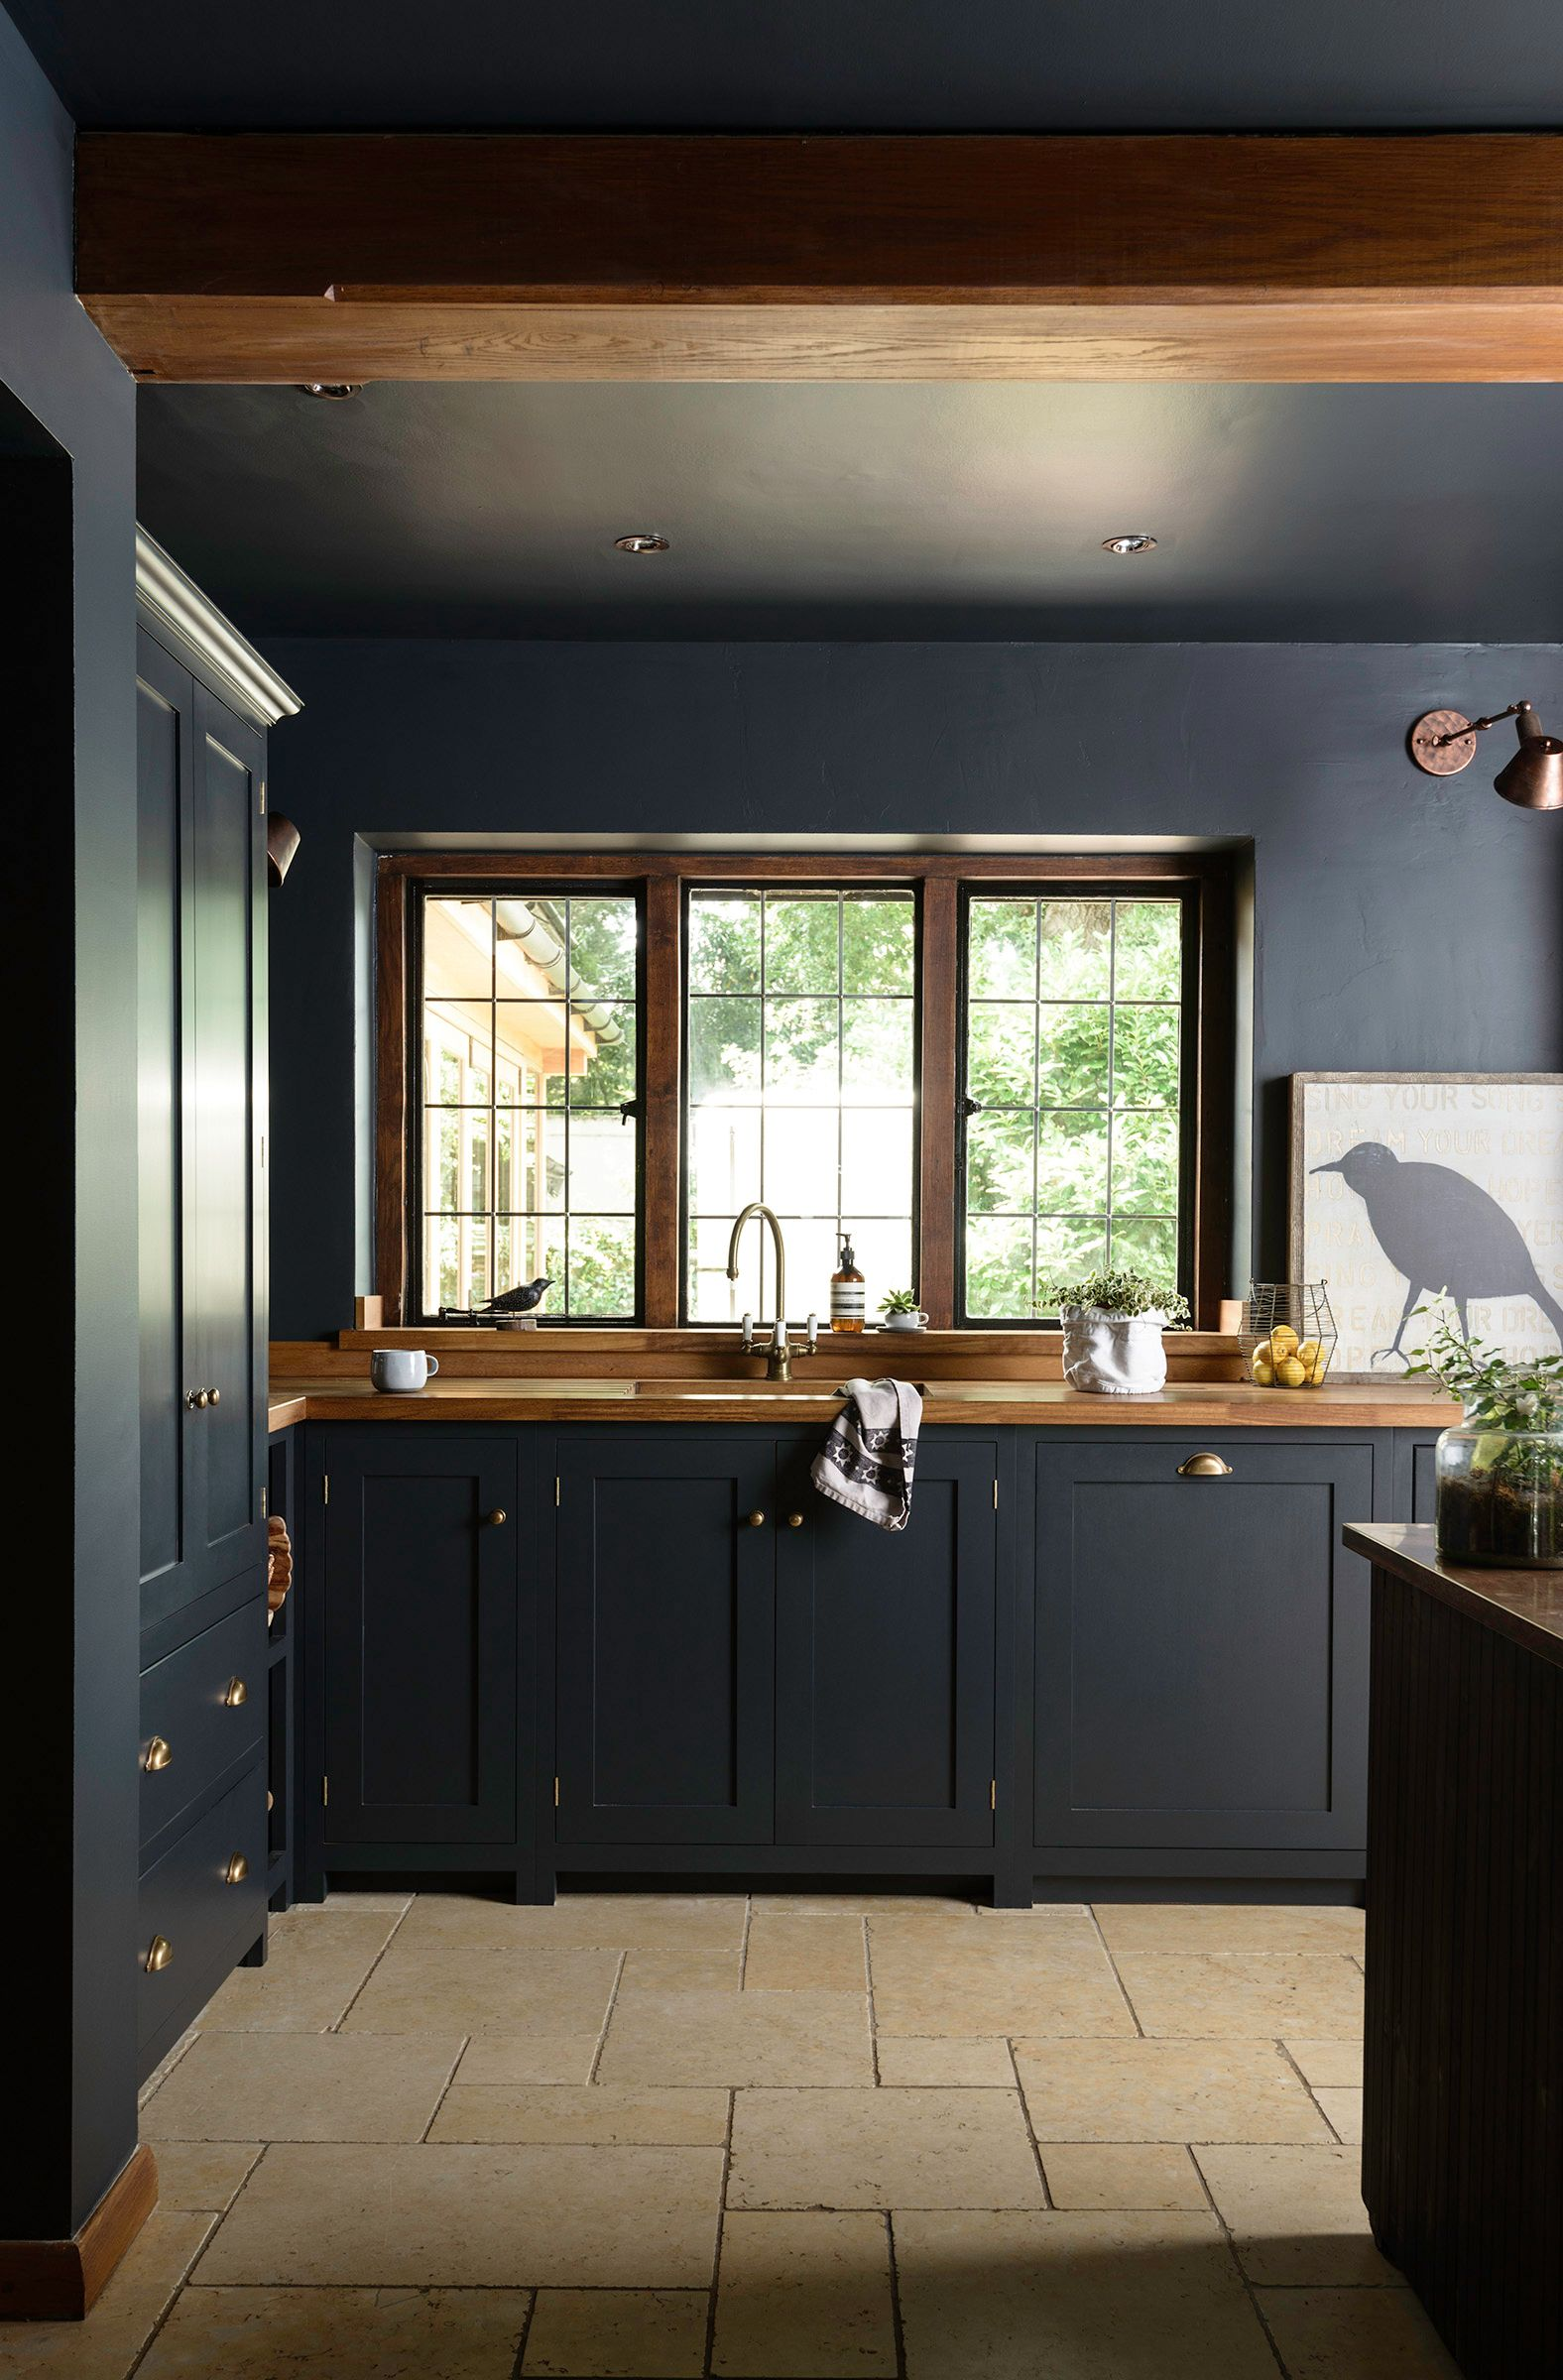 The Iroko worktops and copper sink were such a soft and welcome ...